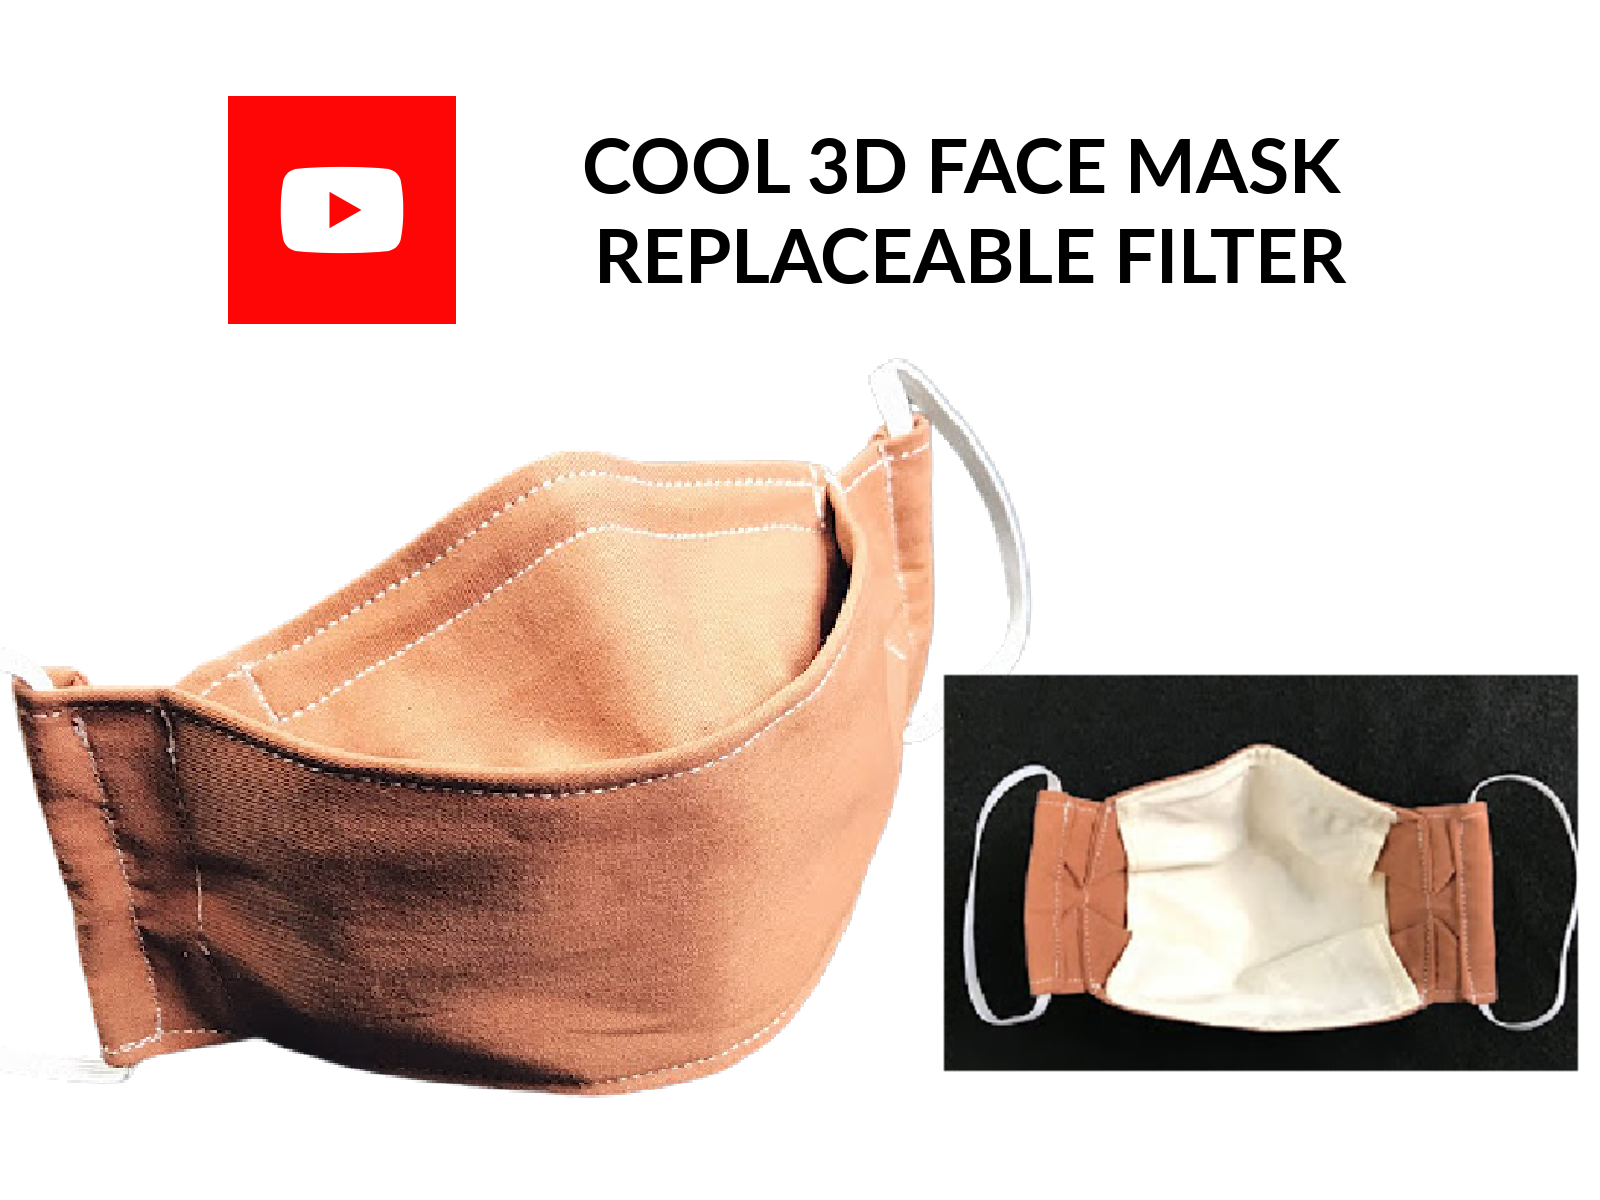 COOL 3D FACE MASK REPLACEABLE FILTER